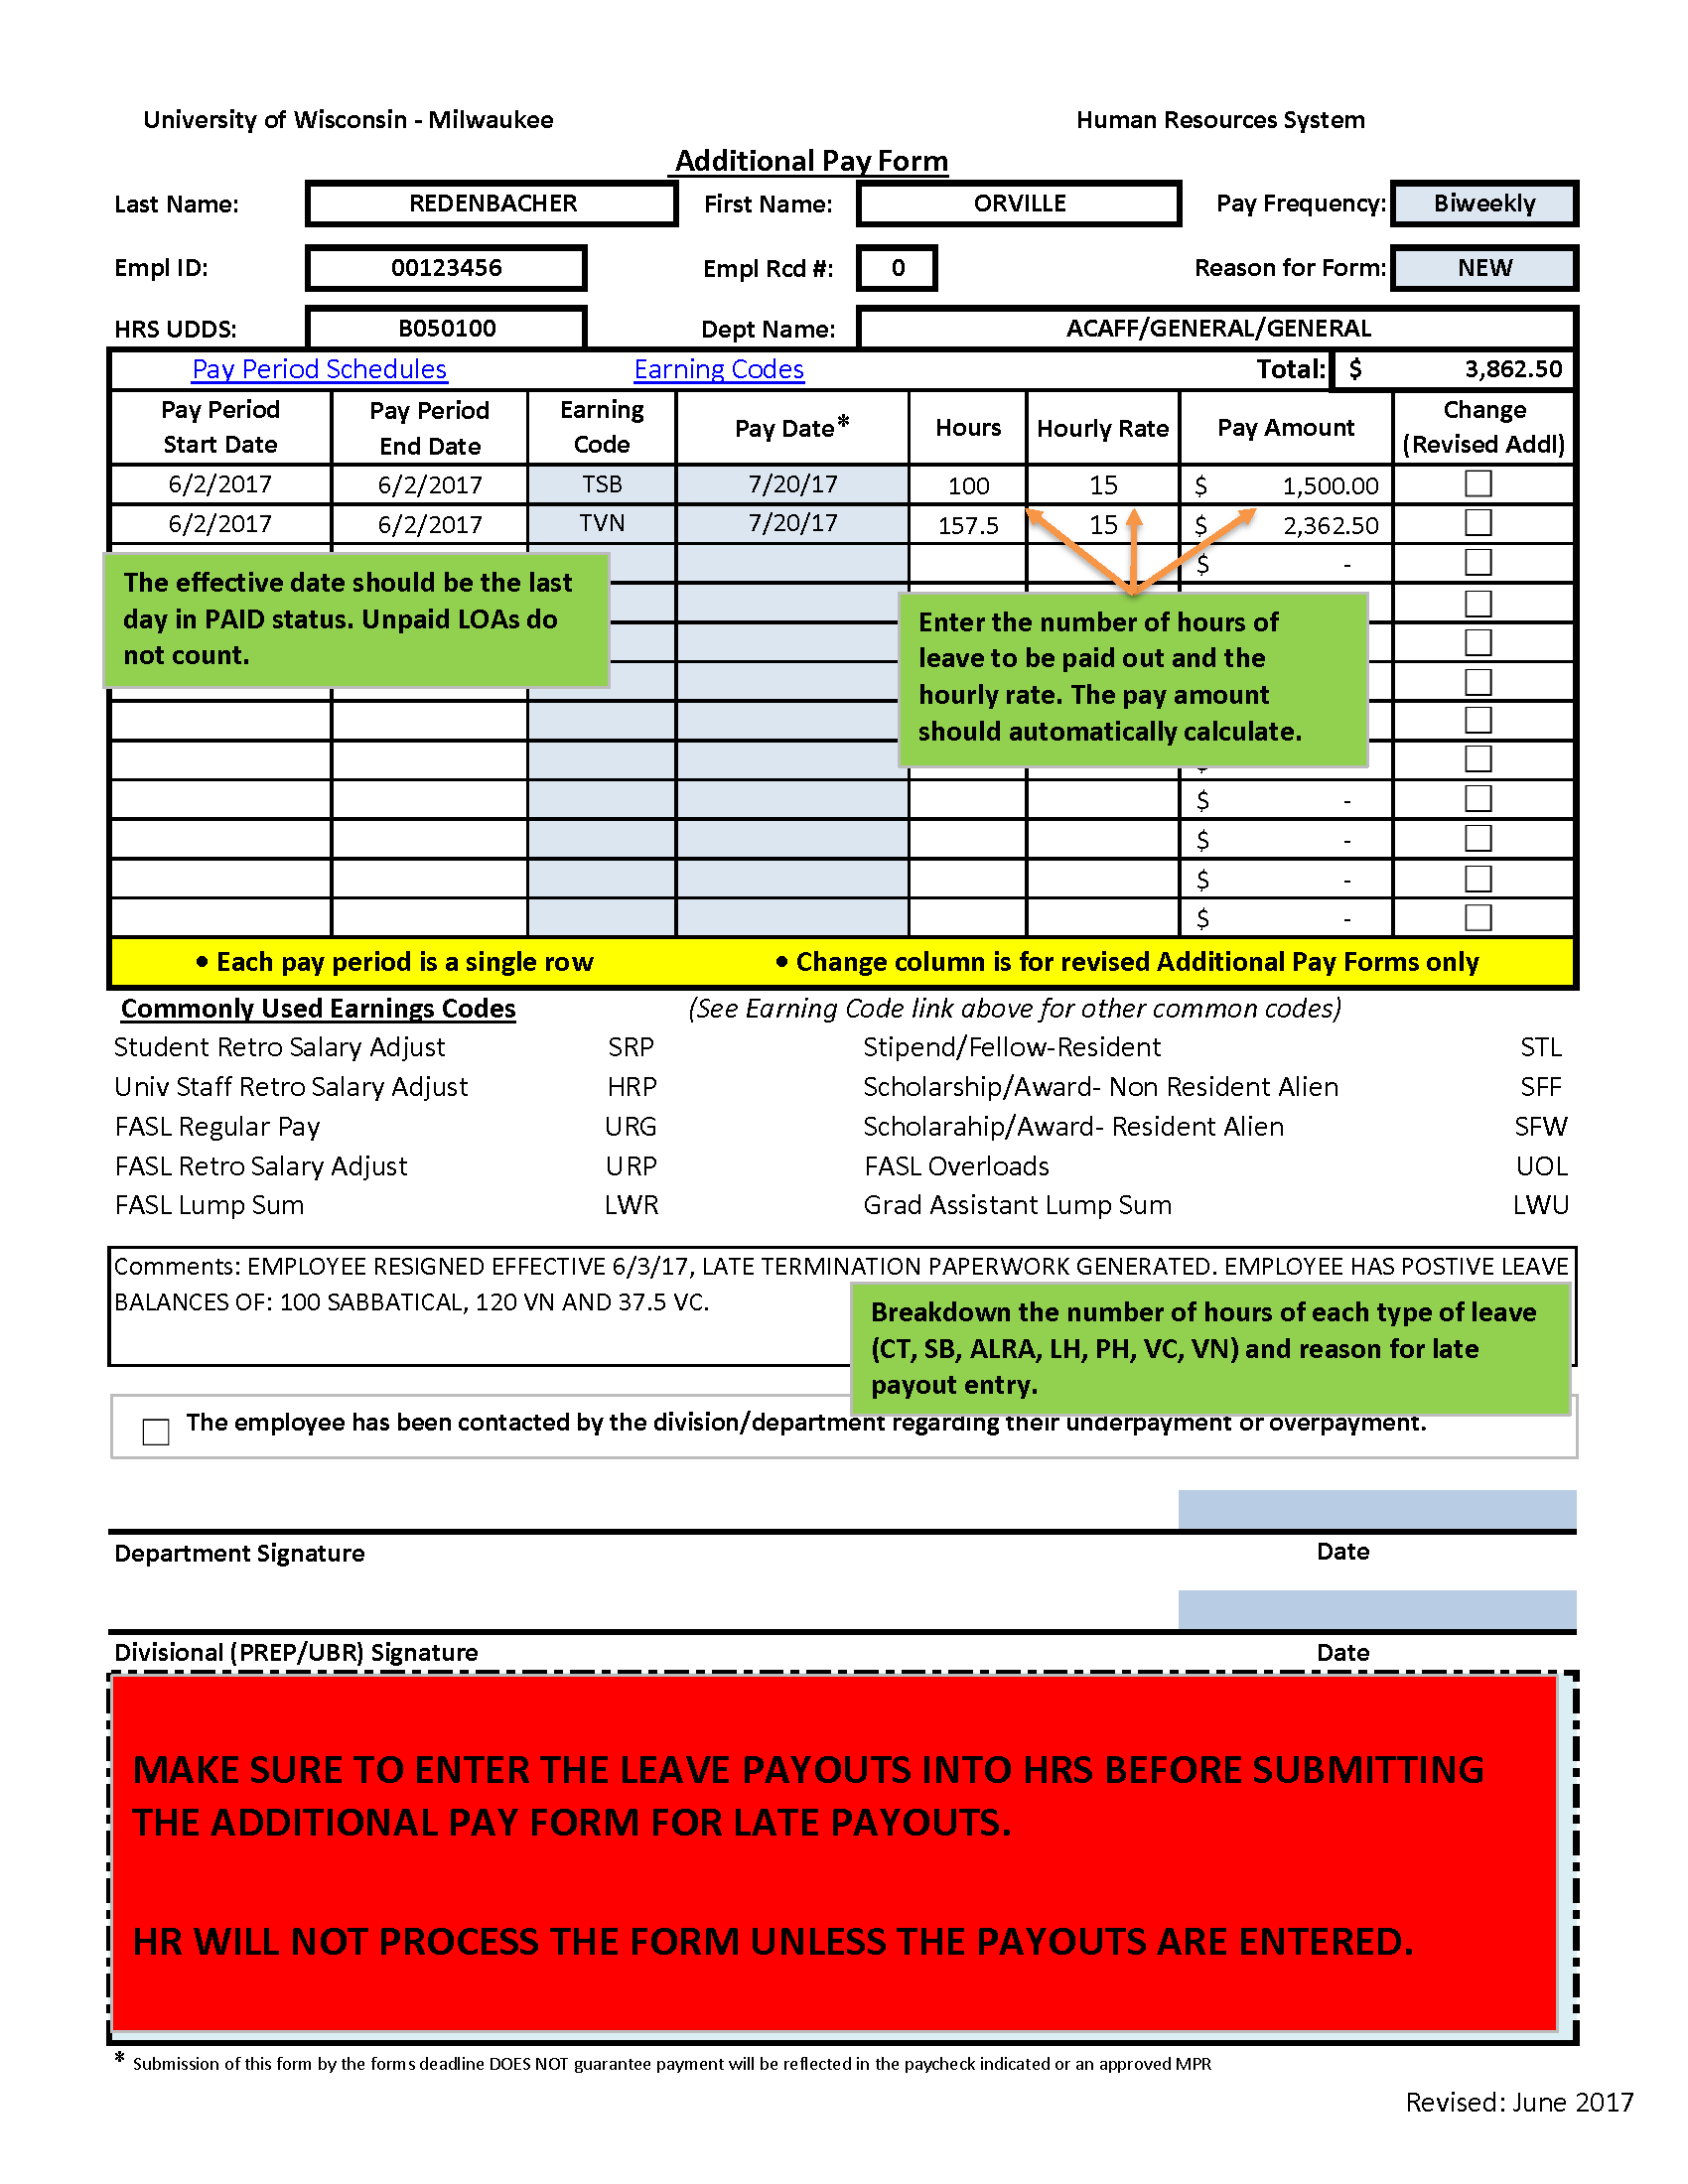 Leave_Payout_Biweekly Tax Deduction Letter Template on student loan, rental property, employee payroll, donation list, full list, truck driver, mortgage interest, charitable donations, self employment,